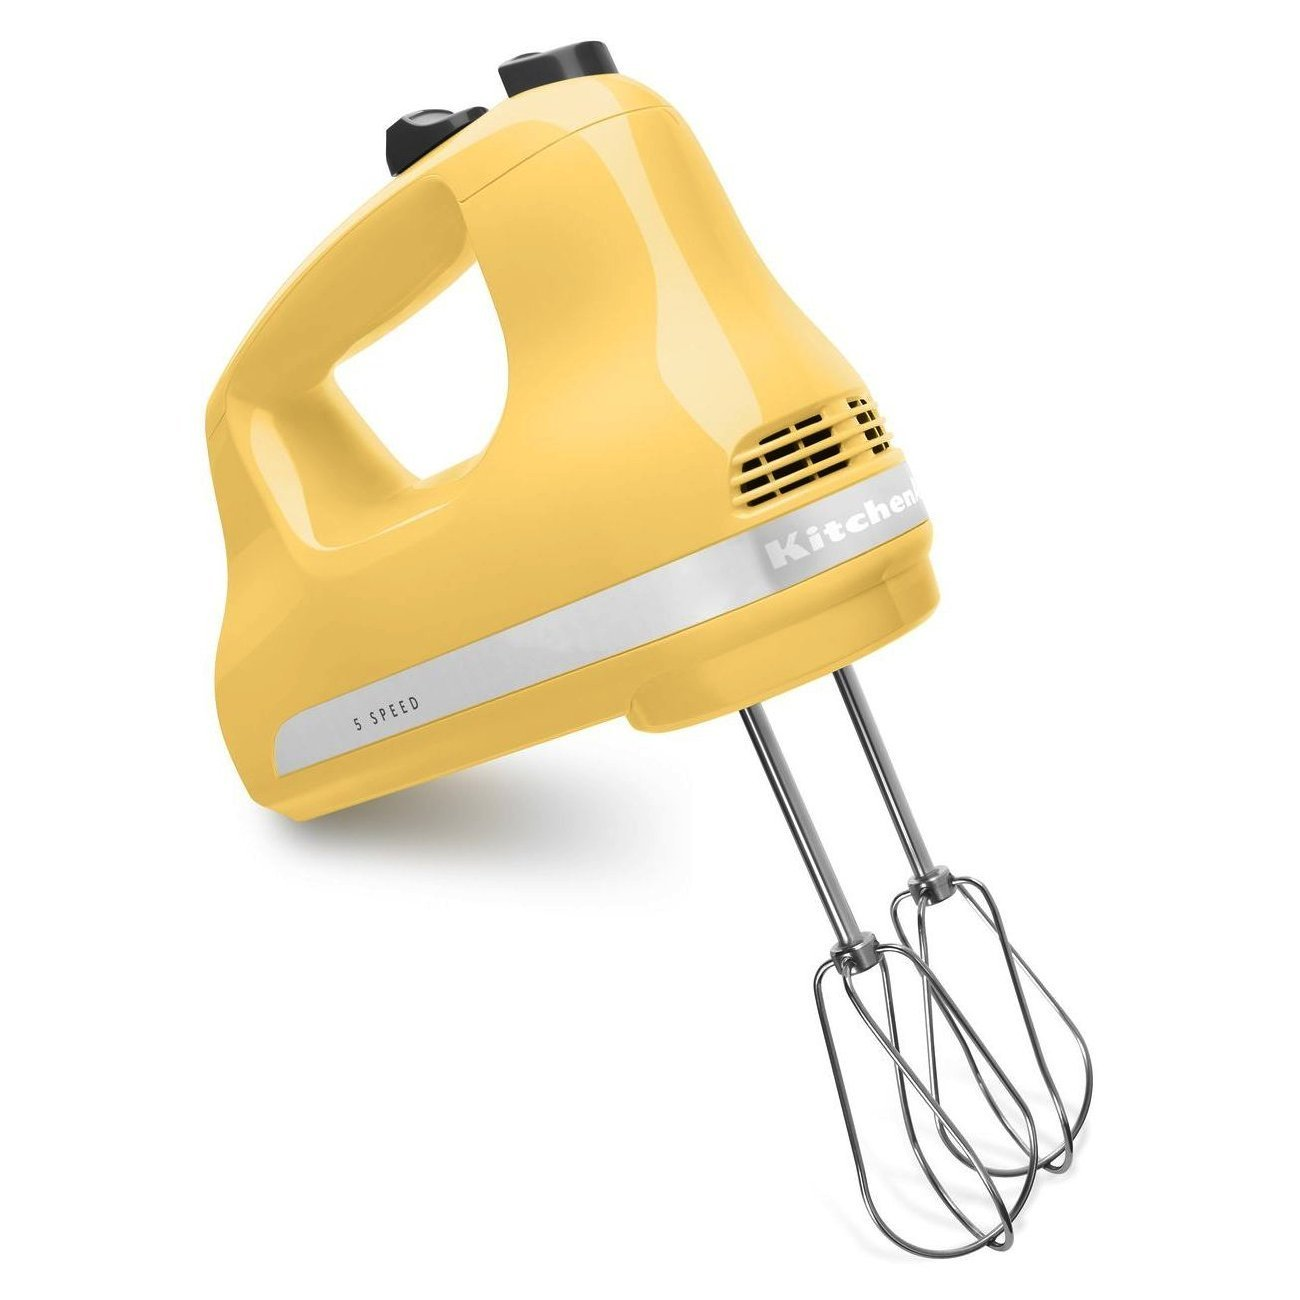 KitchenAid KHM53my 5-Speed Ultra Power Hand Mixer Majestic Yellow